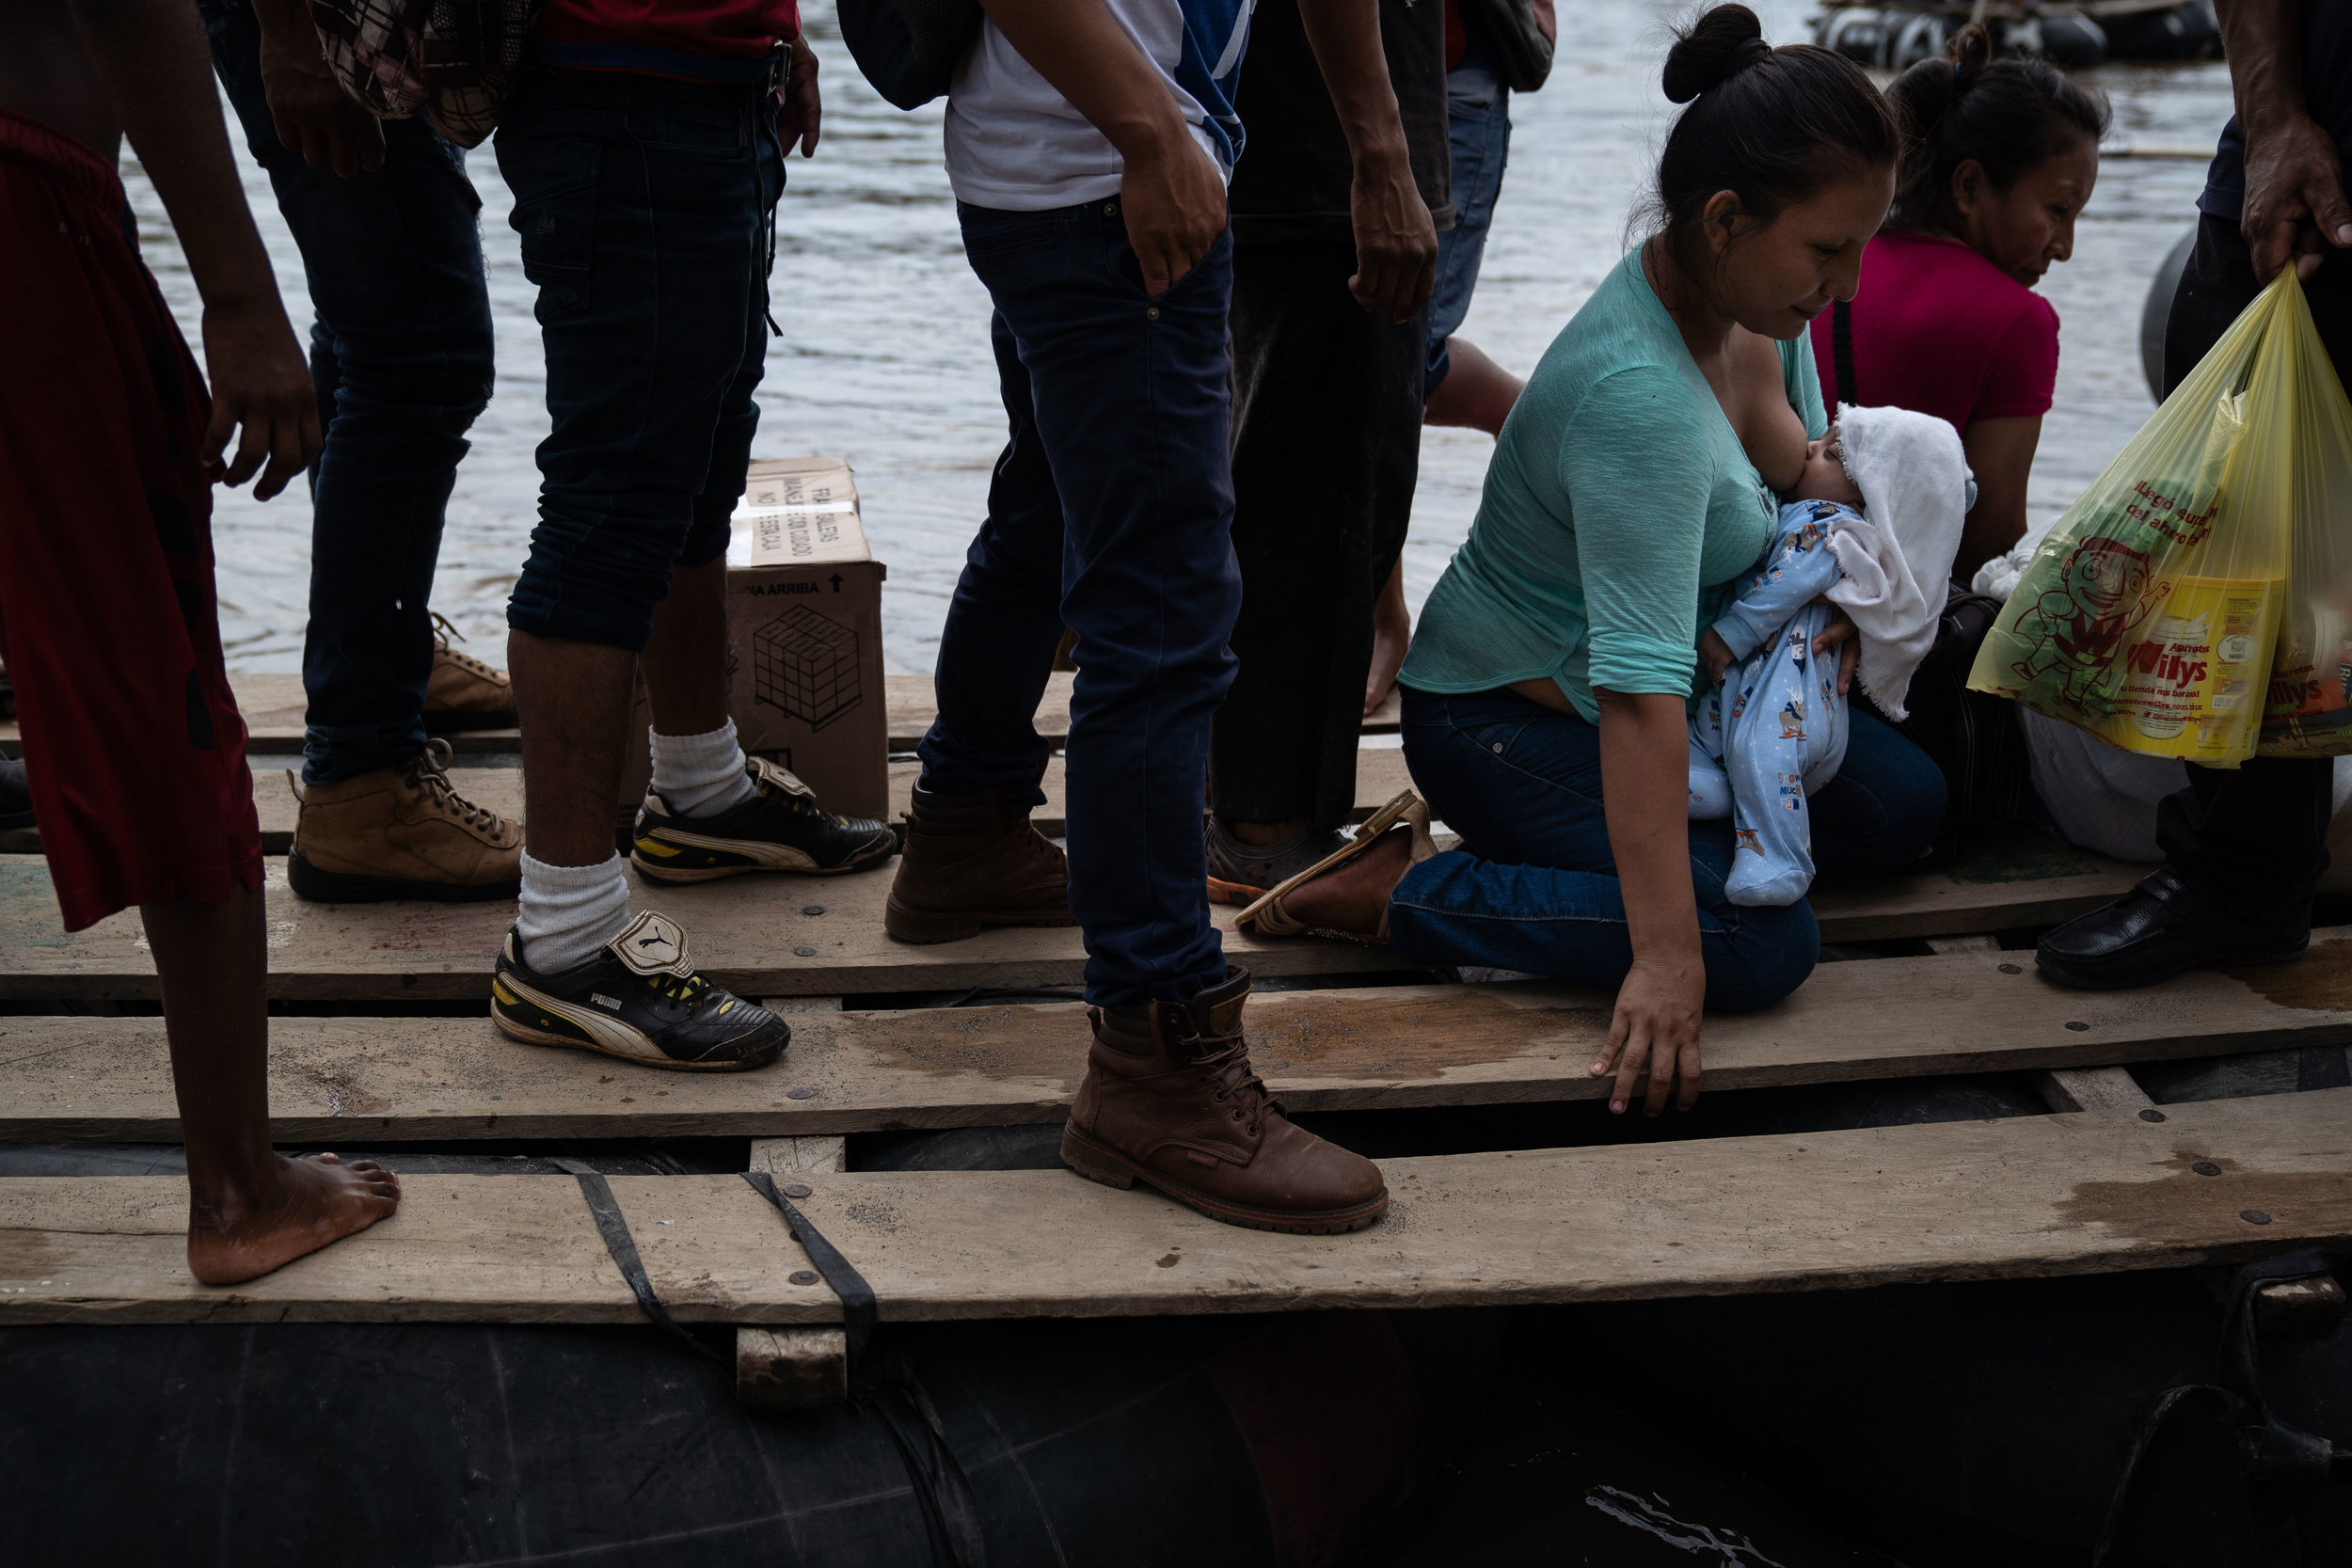 A woman breastfeeding her child crosses the Suchiate River at the Guatemala-Mexico border on a makeshift raft in August, 2018.